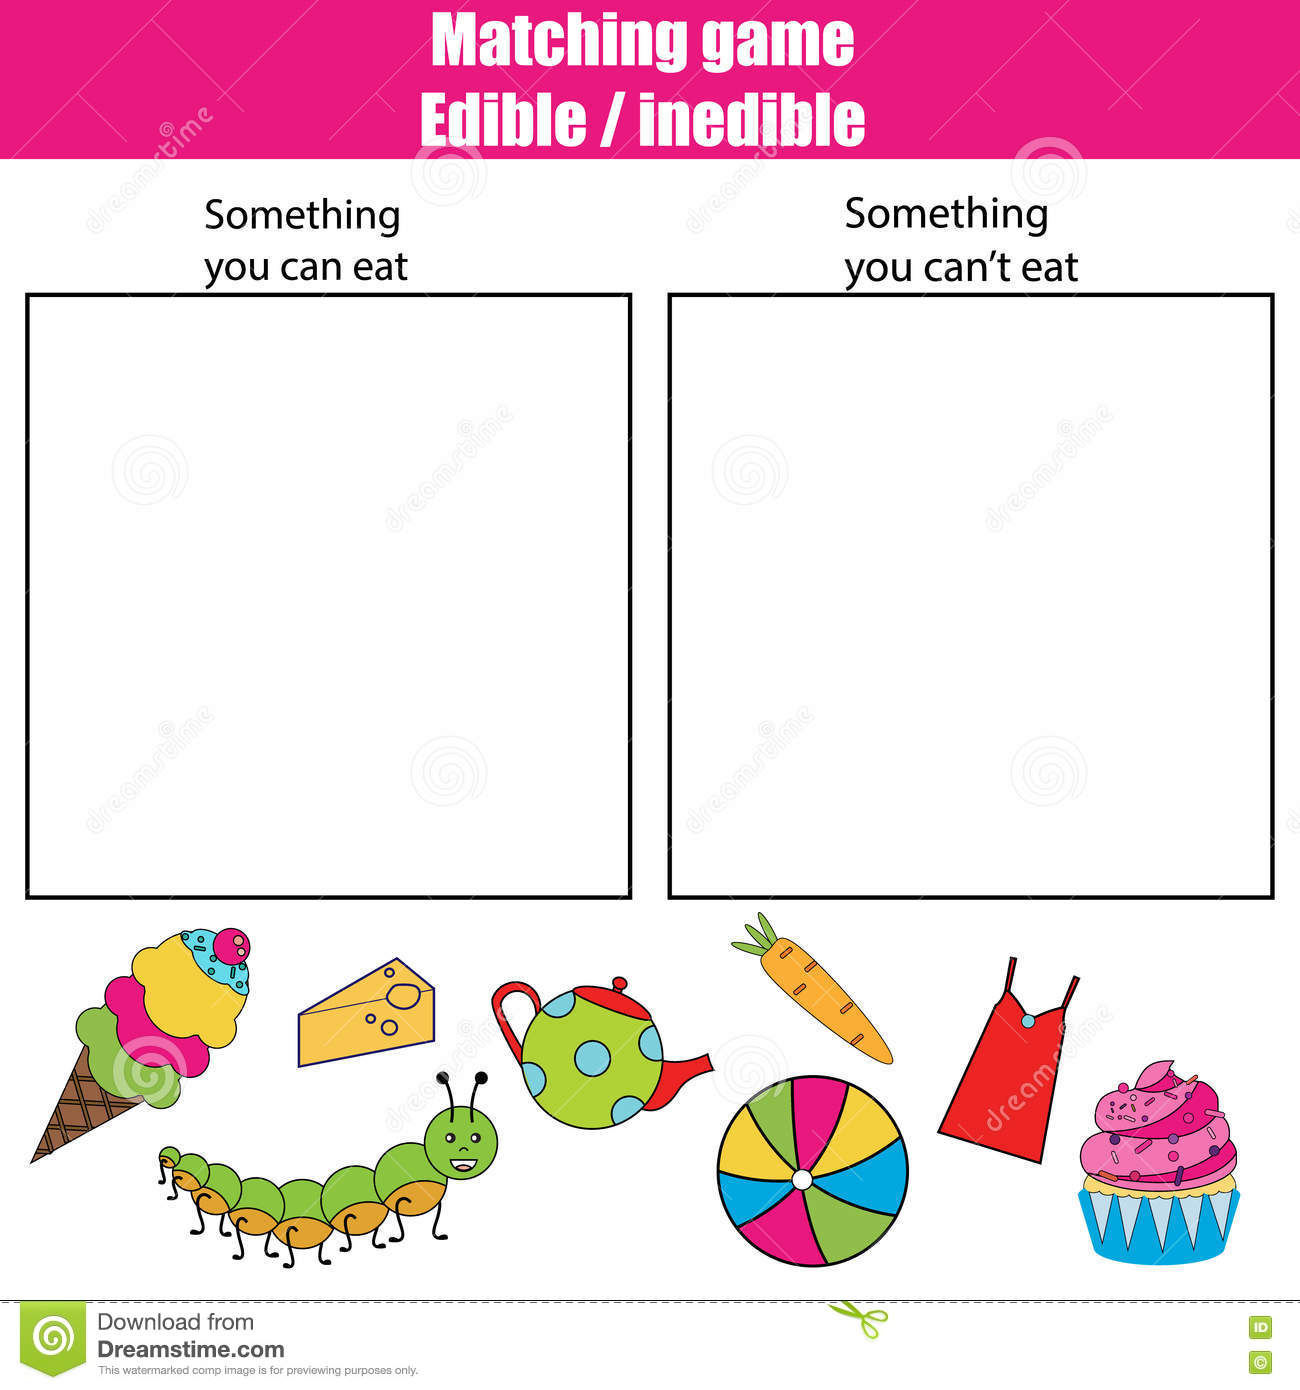 royalty free stock photo download edible inedible educational children game kids activity sheet